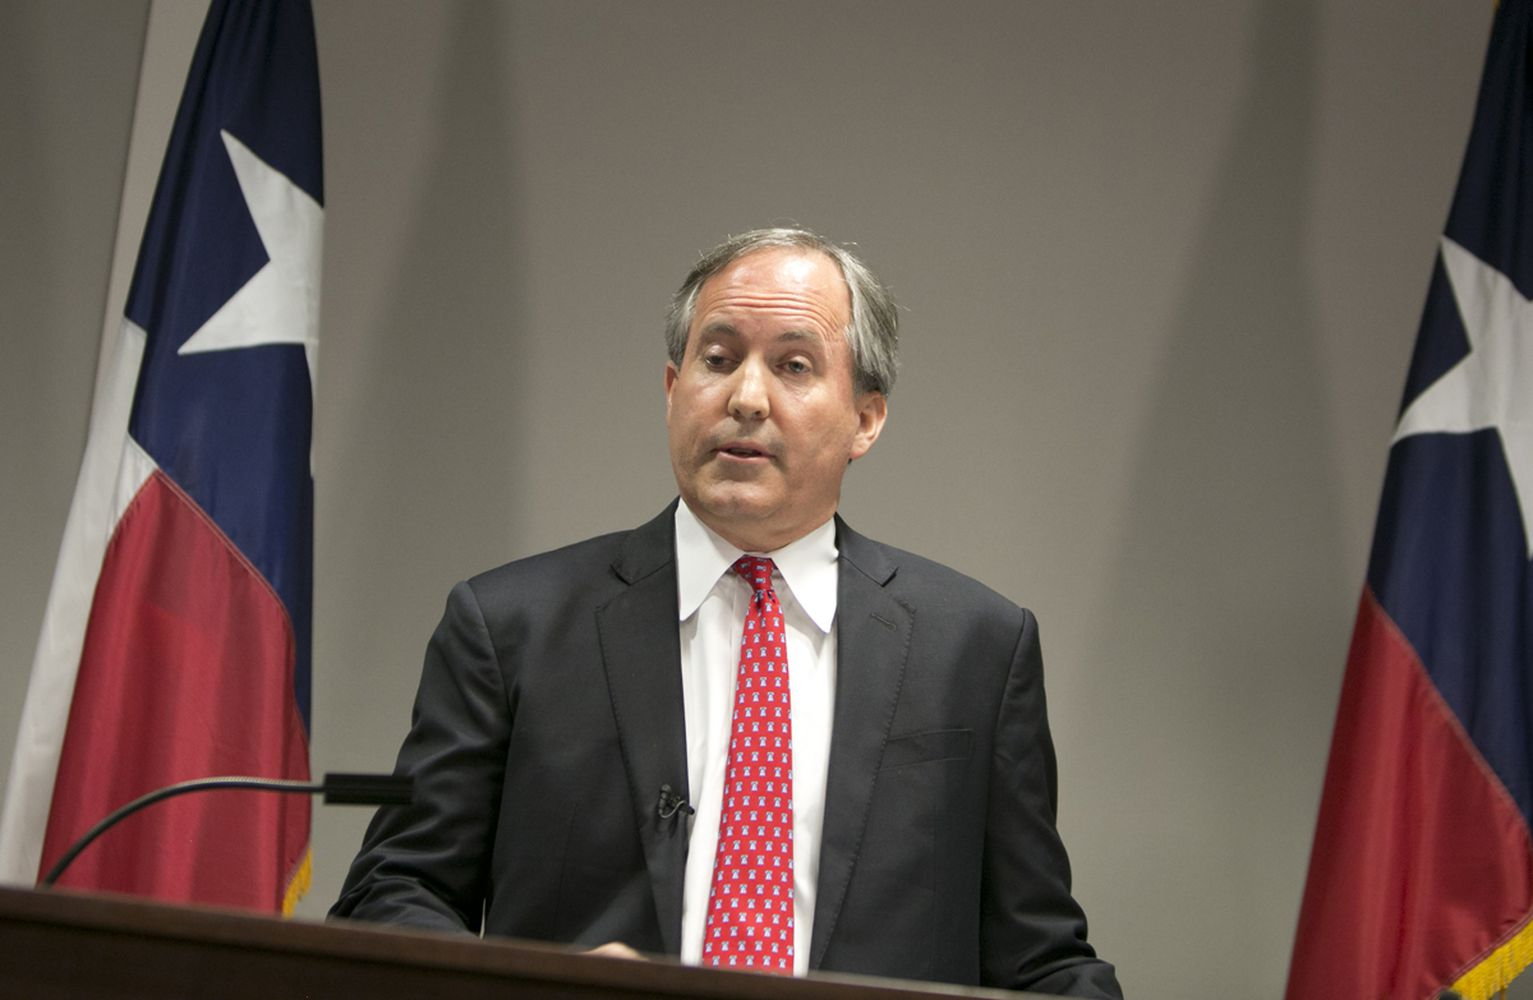 Texas Attorney General Ken Paxton during press conference announcing a lawsuit that had been filed against the U.S Dept of Education, U.S Dept of Justice and other agencies which are requiring TX public schools to open restrooms, locker rooms to both sexes. May 25, 2016